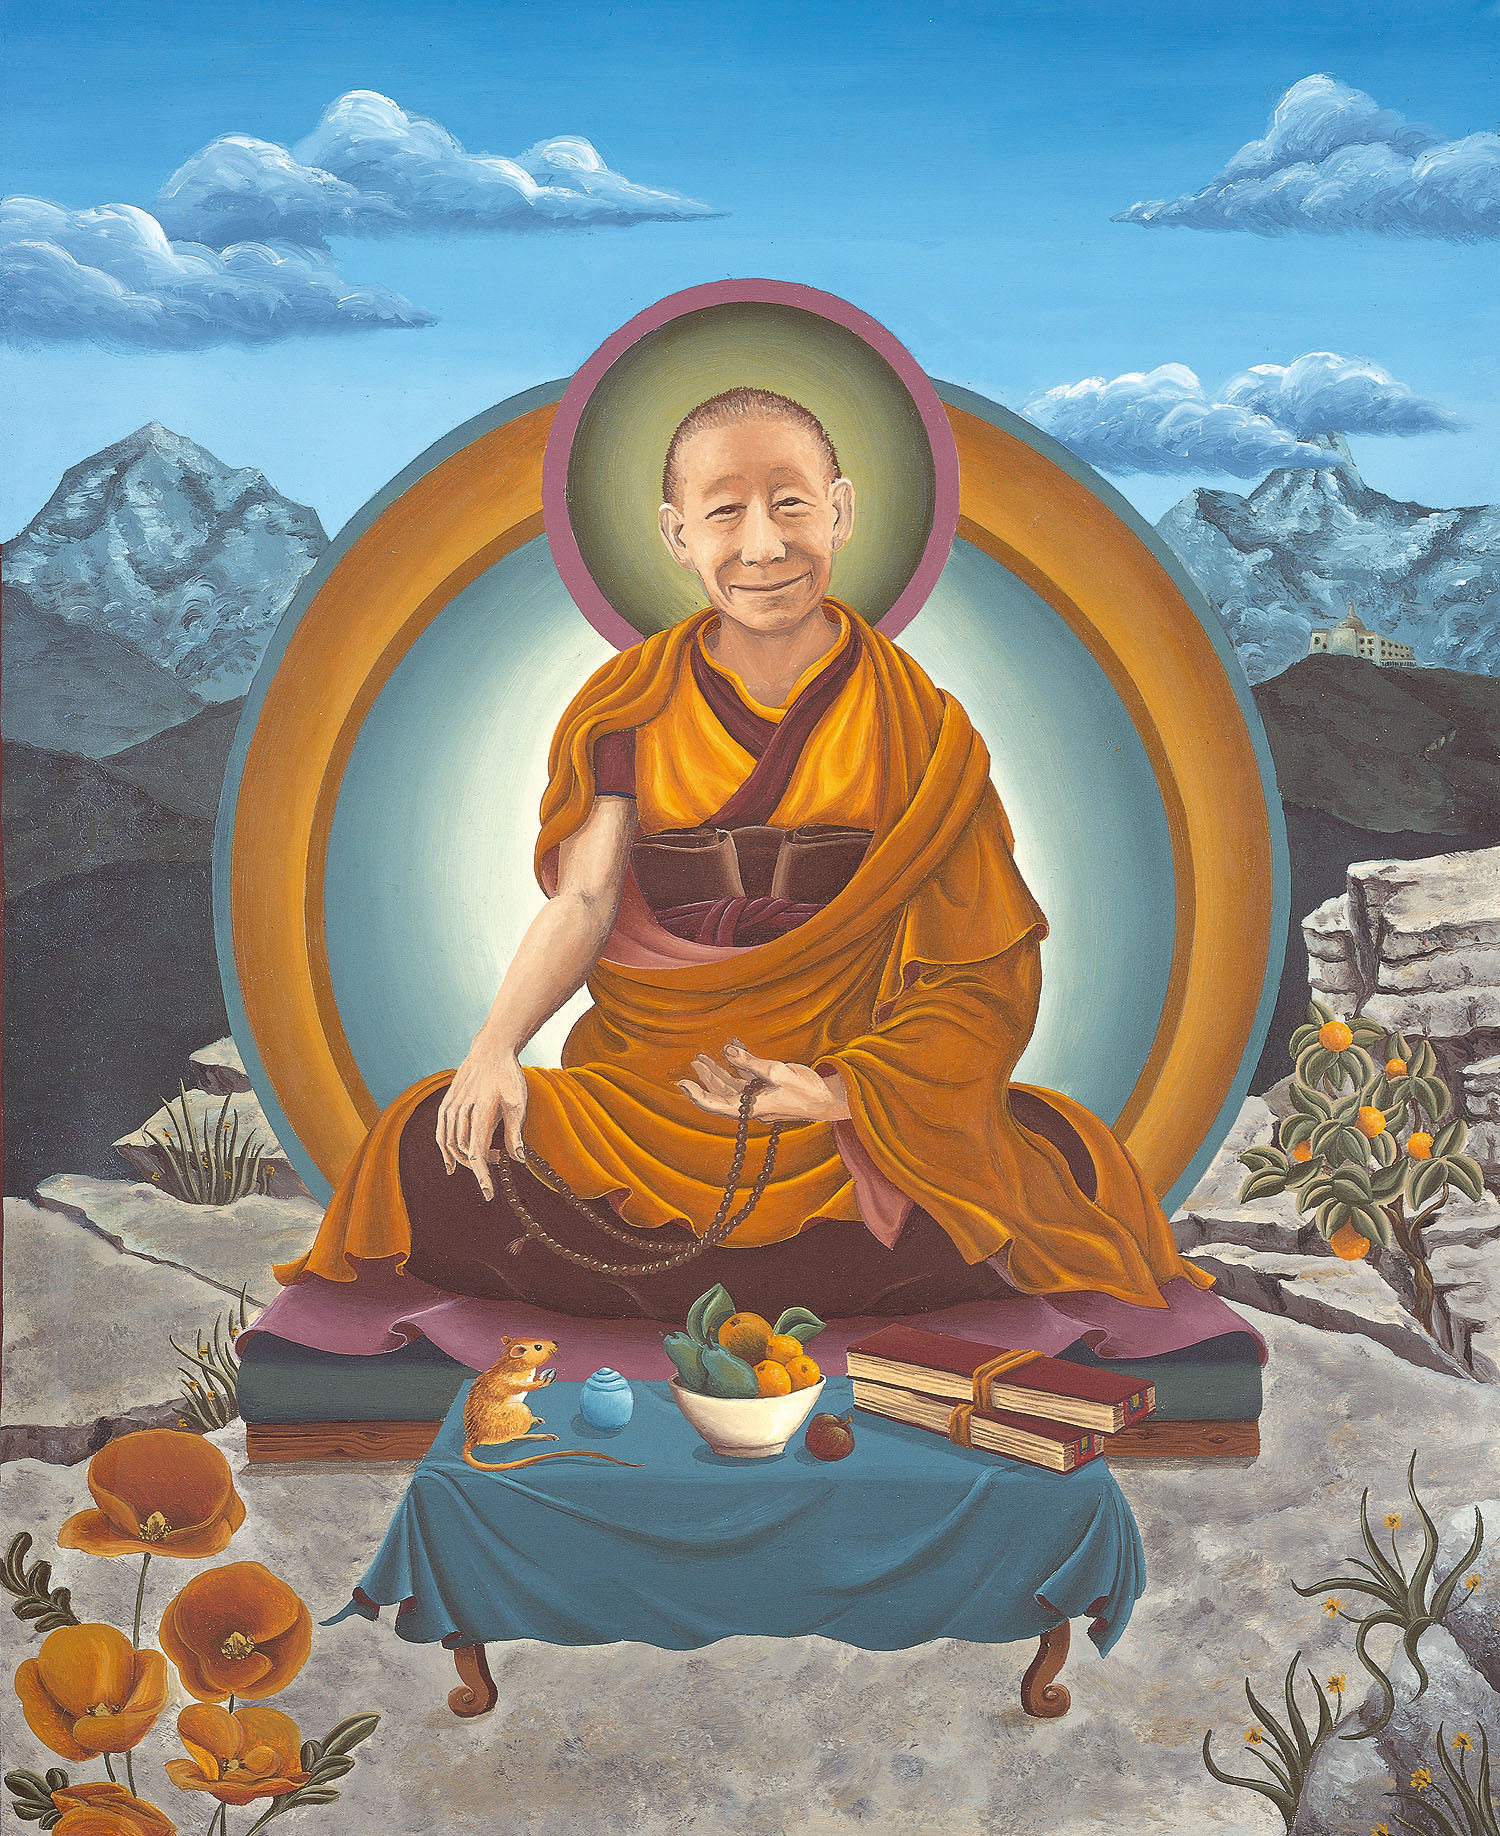 Geshe Langri Tangpa of the Kadampa Lineage